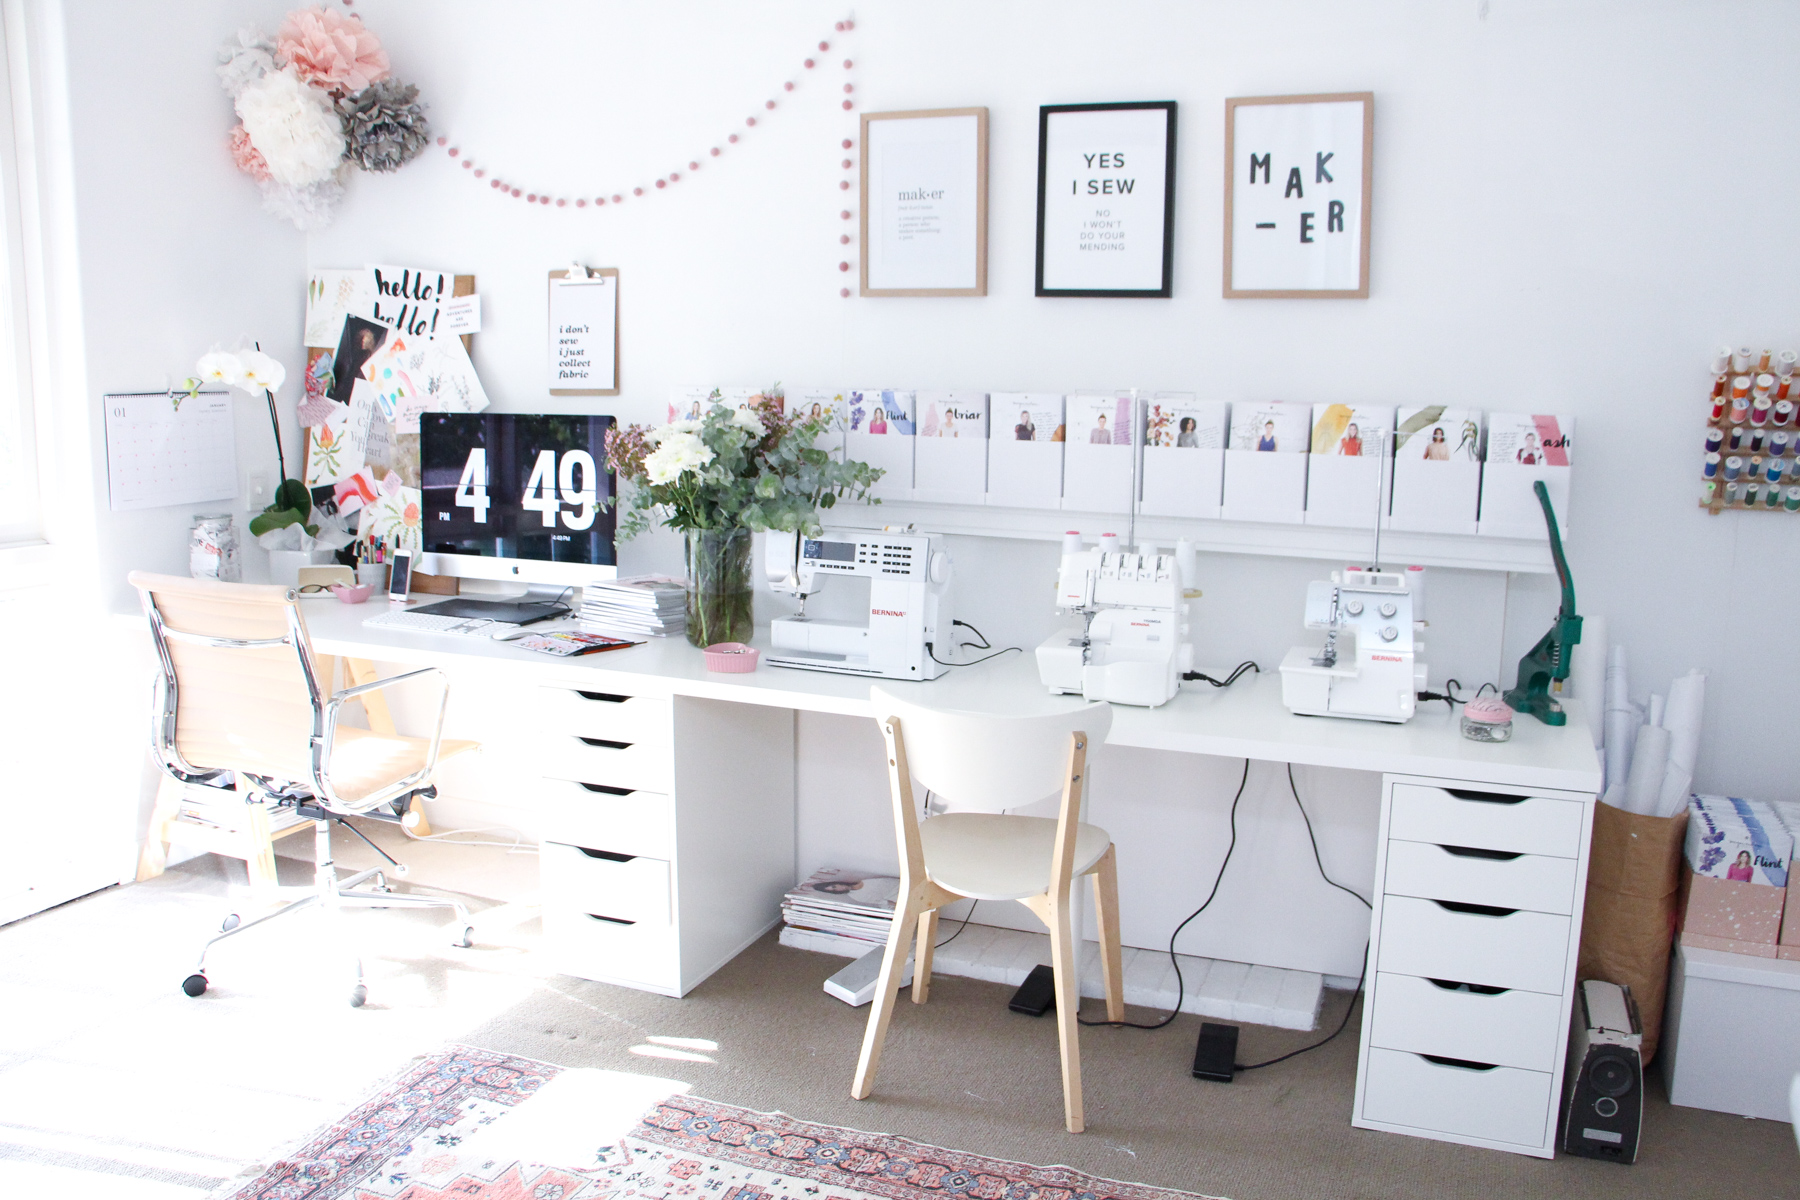 A tour of Megan Nielsen's workroom // A stylish home office with multiple workspaces included sewing space